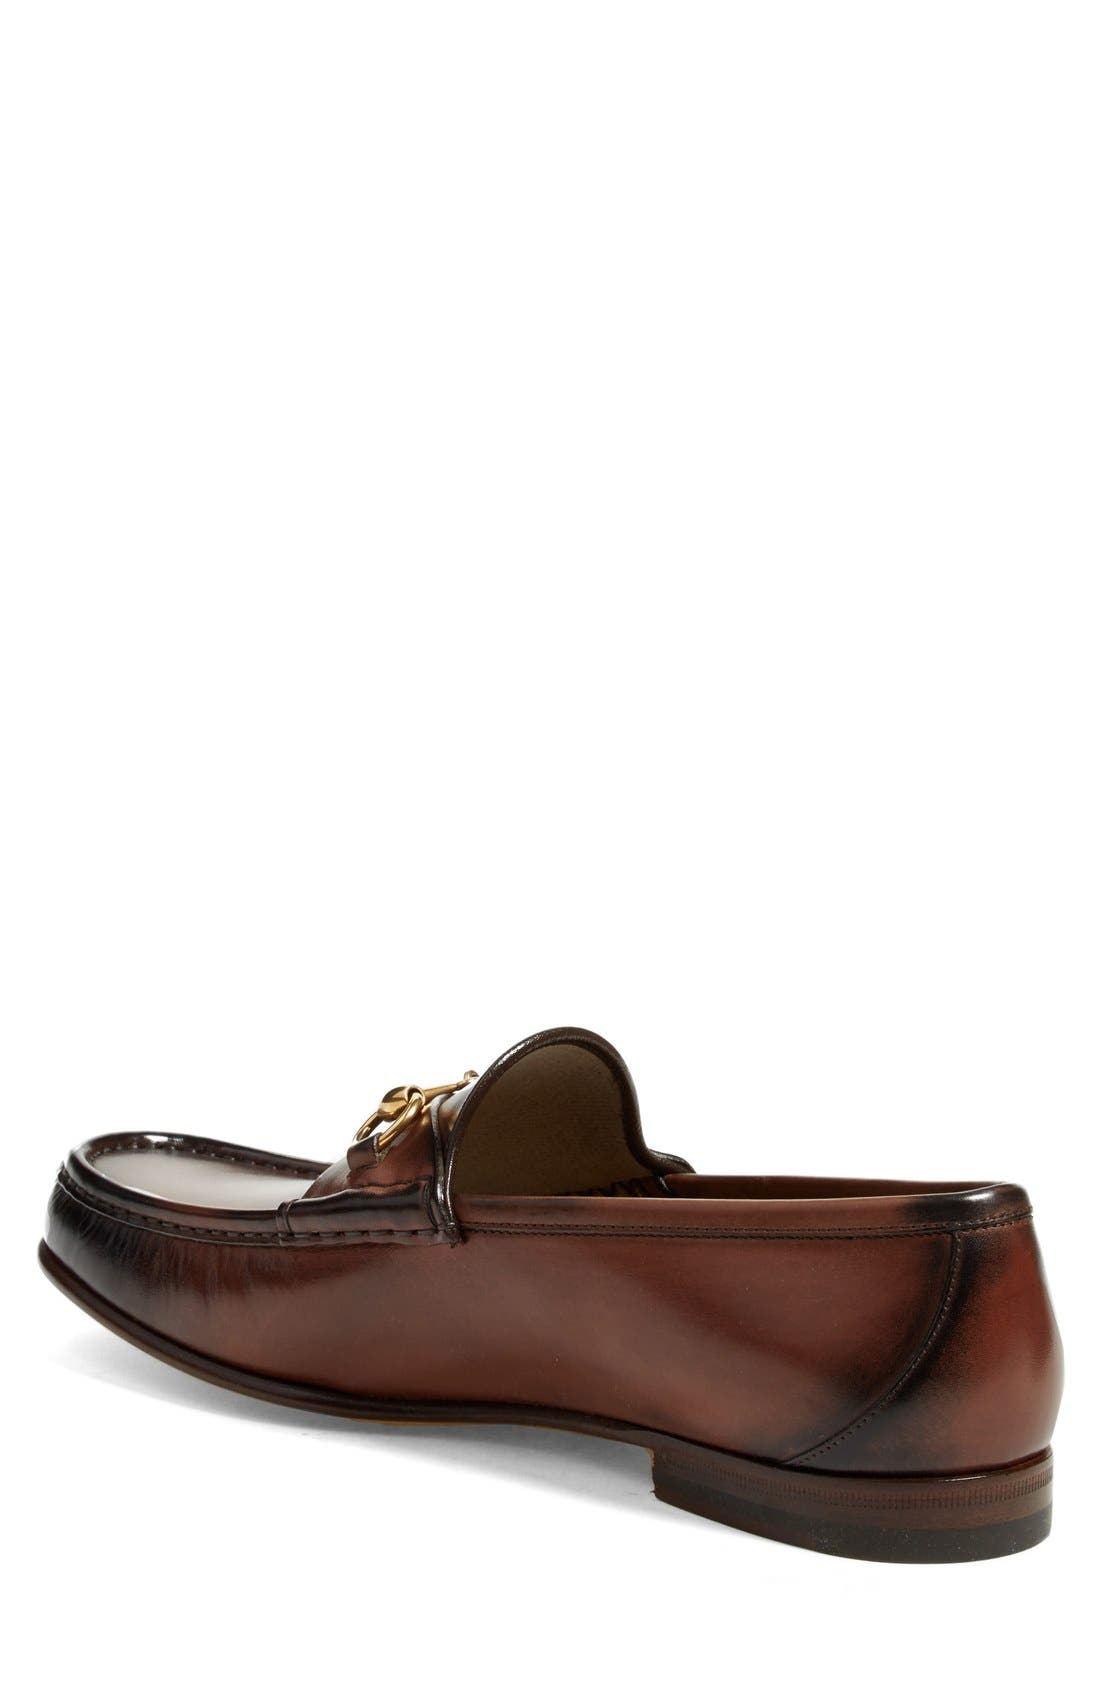 Alternate Image 2  - Gucci 'Roos' Bit Loafer (Men)